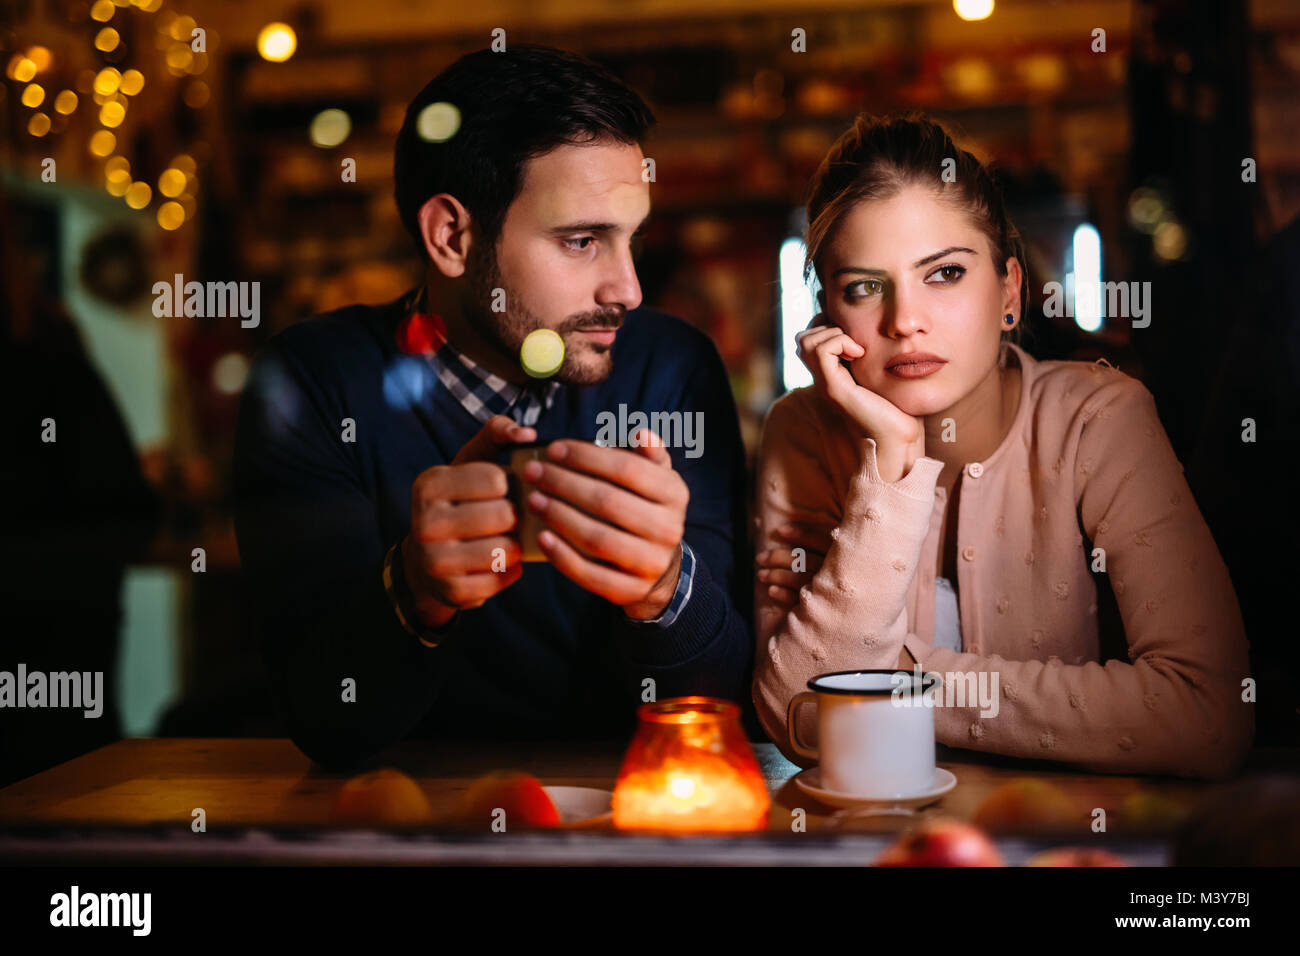 Sad couple having conflict and relationship problems - Stock Image